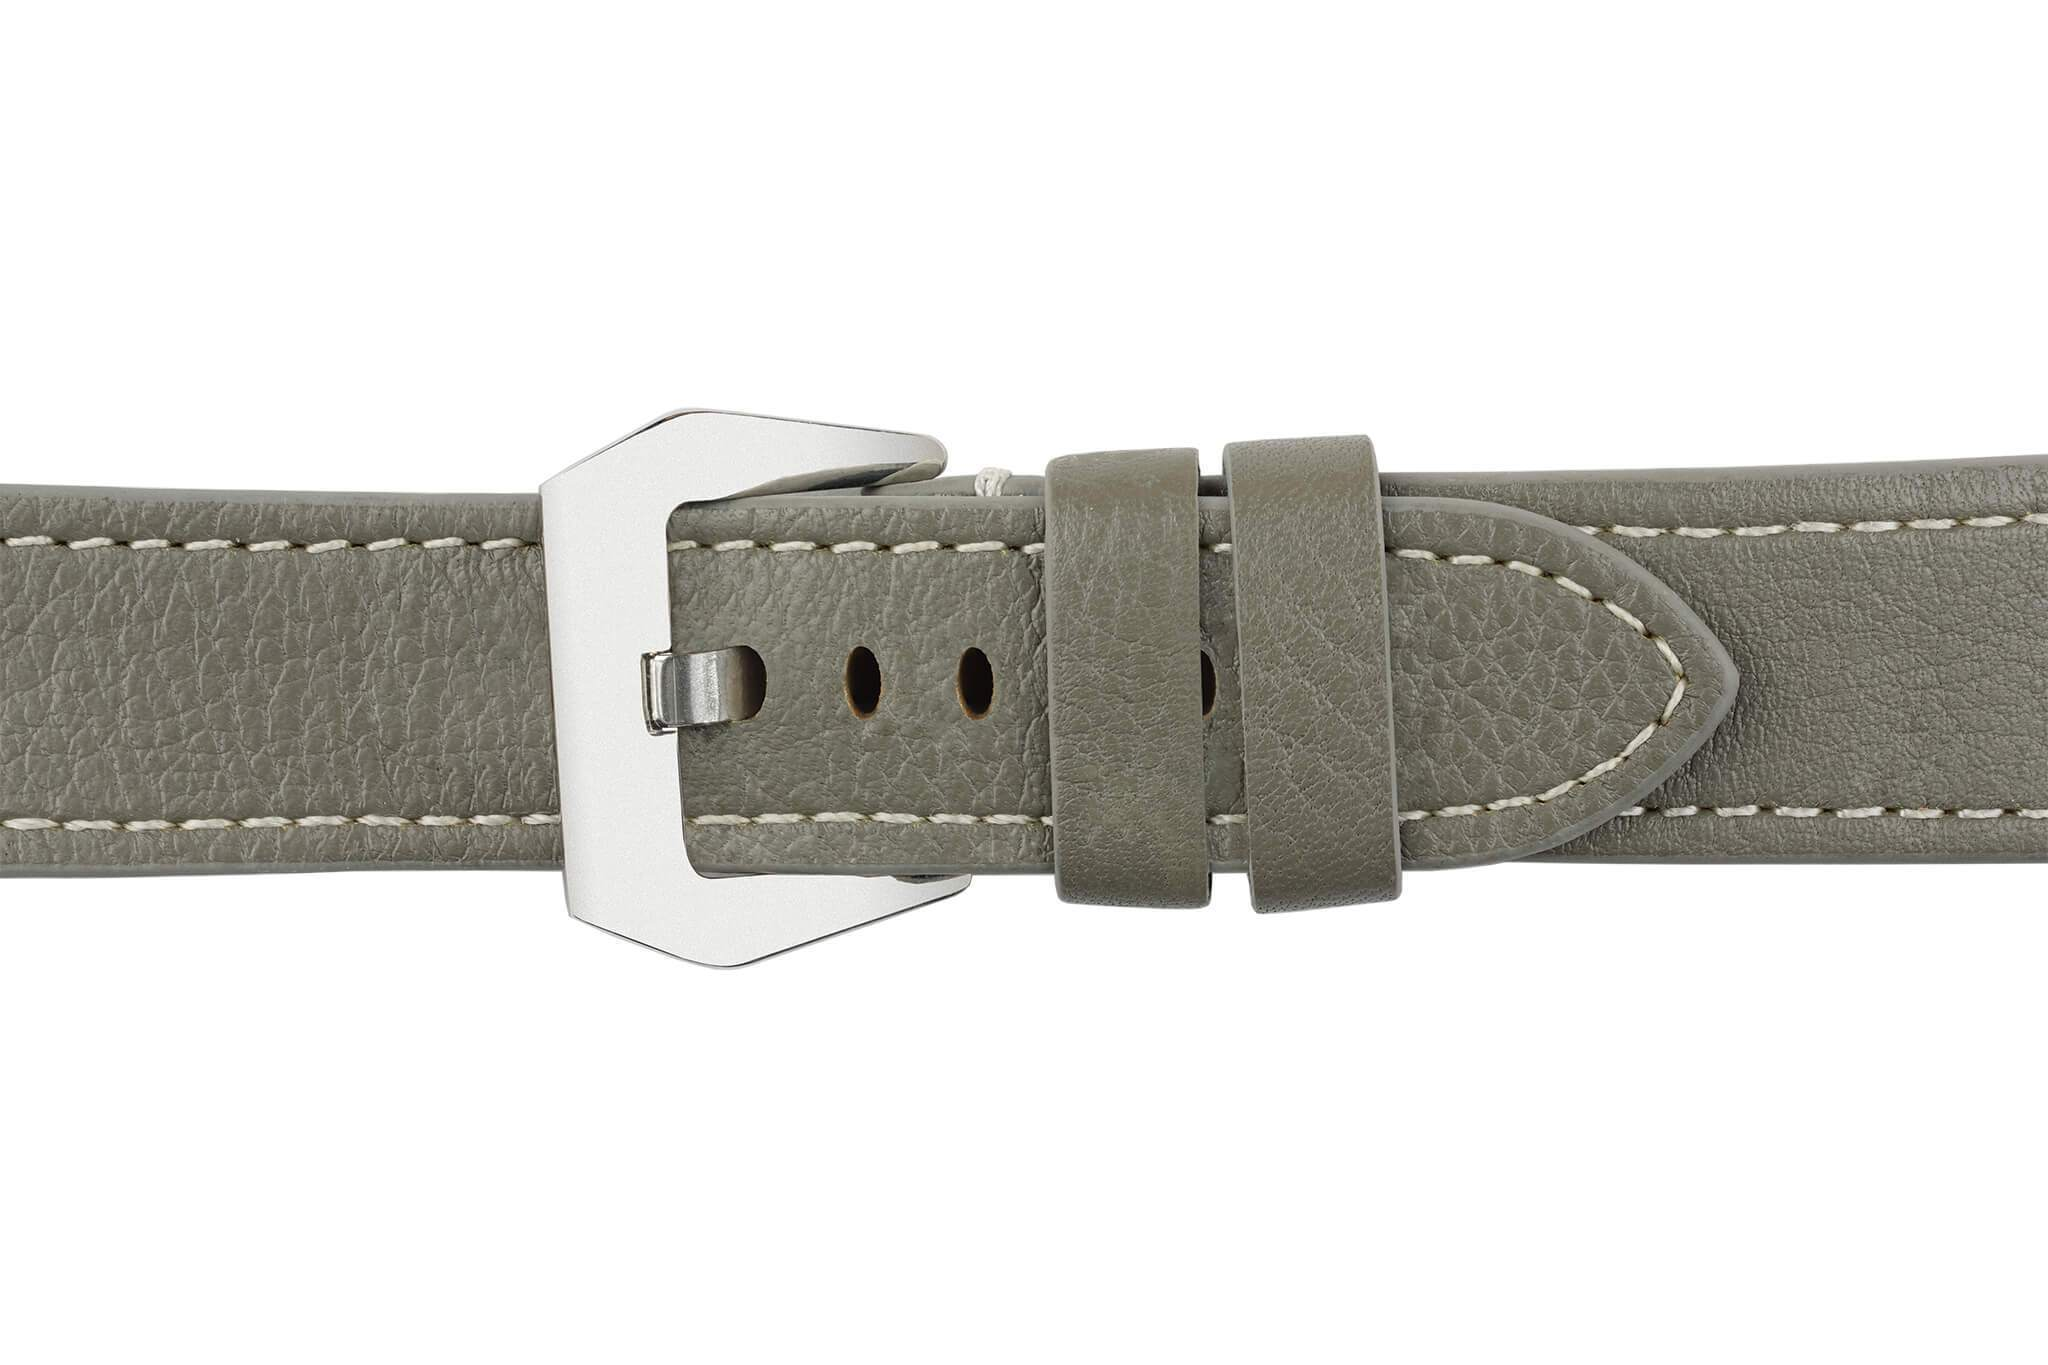 Watch Straps - 22mm Battleship Grey Leather Watch Strap